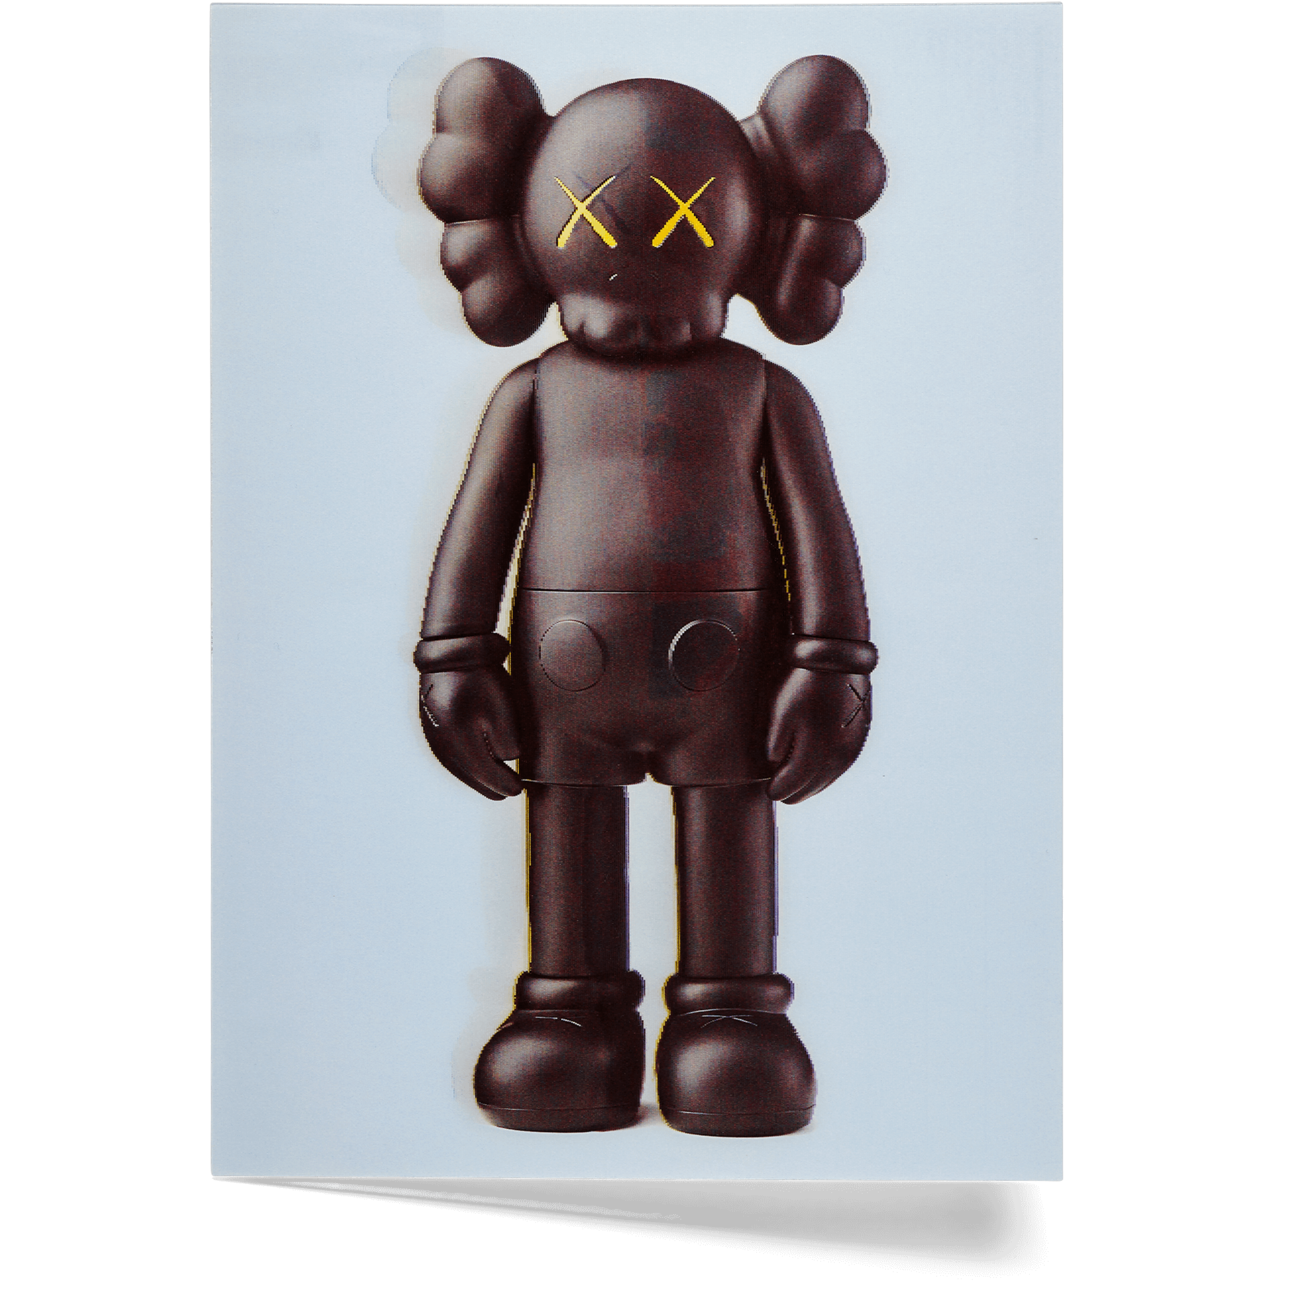 Kaws NGV Lenticular Postcard set of 4 companion flayed